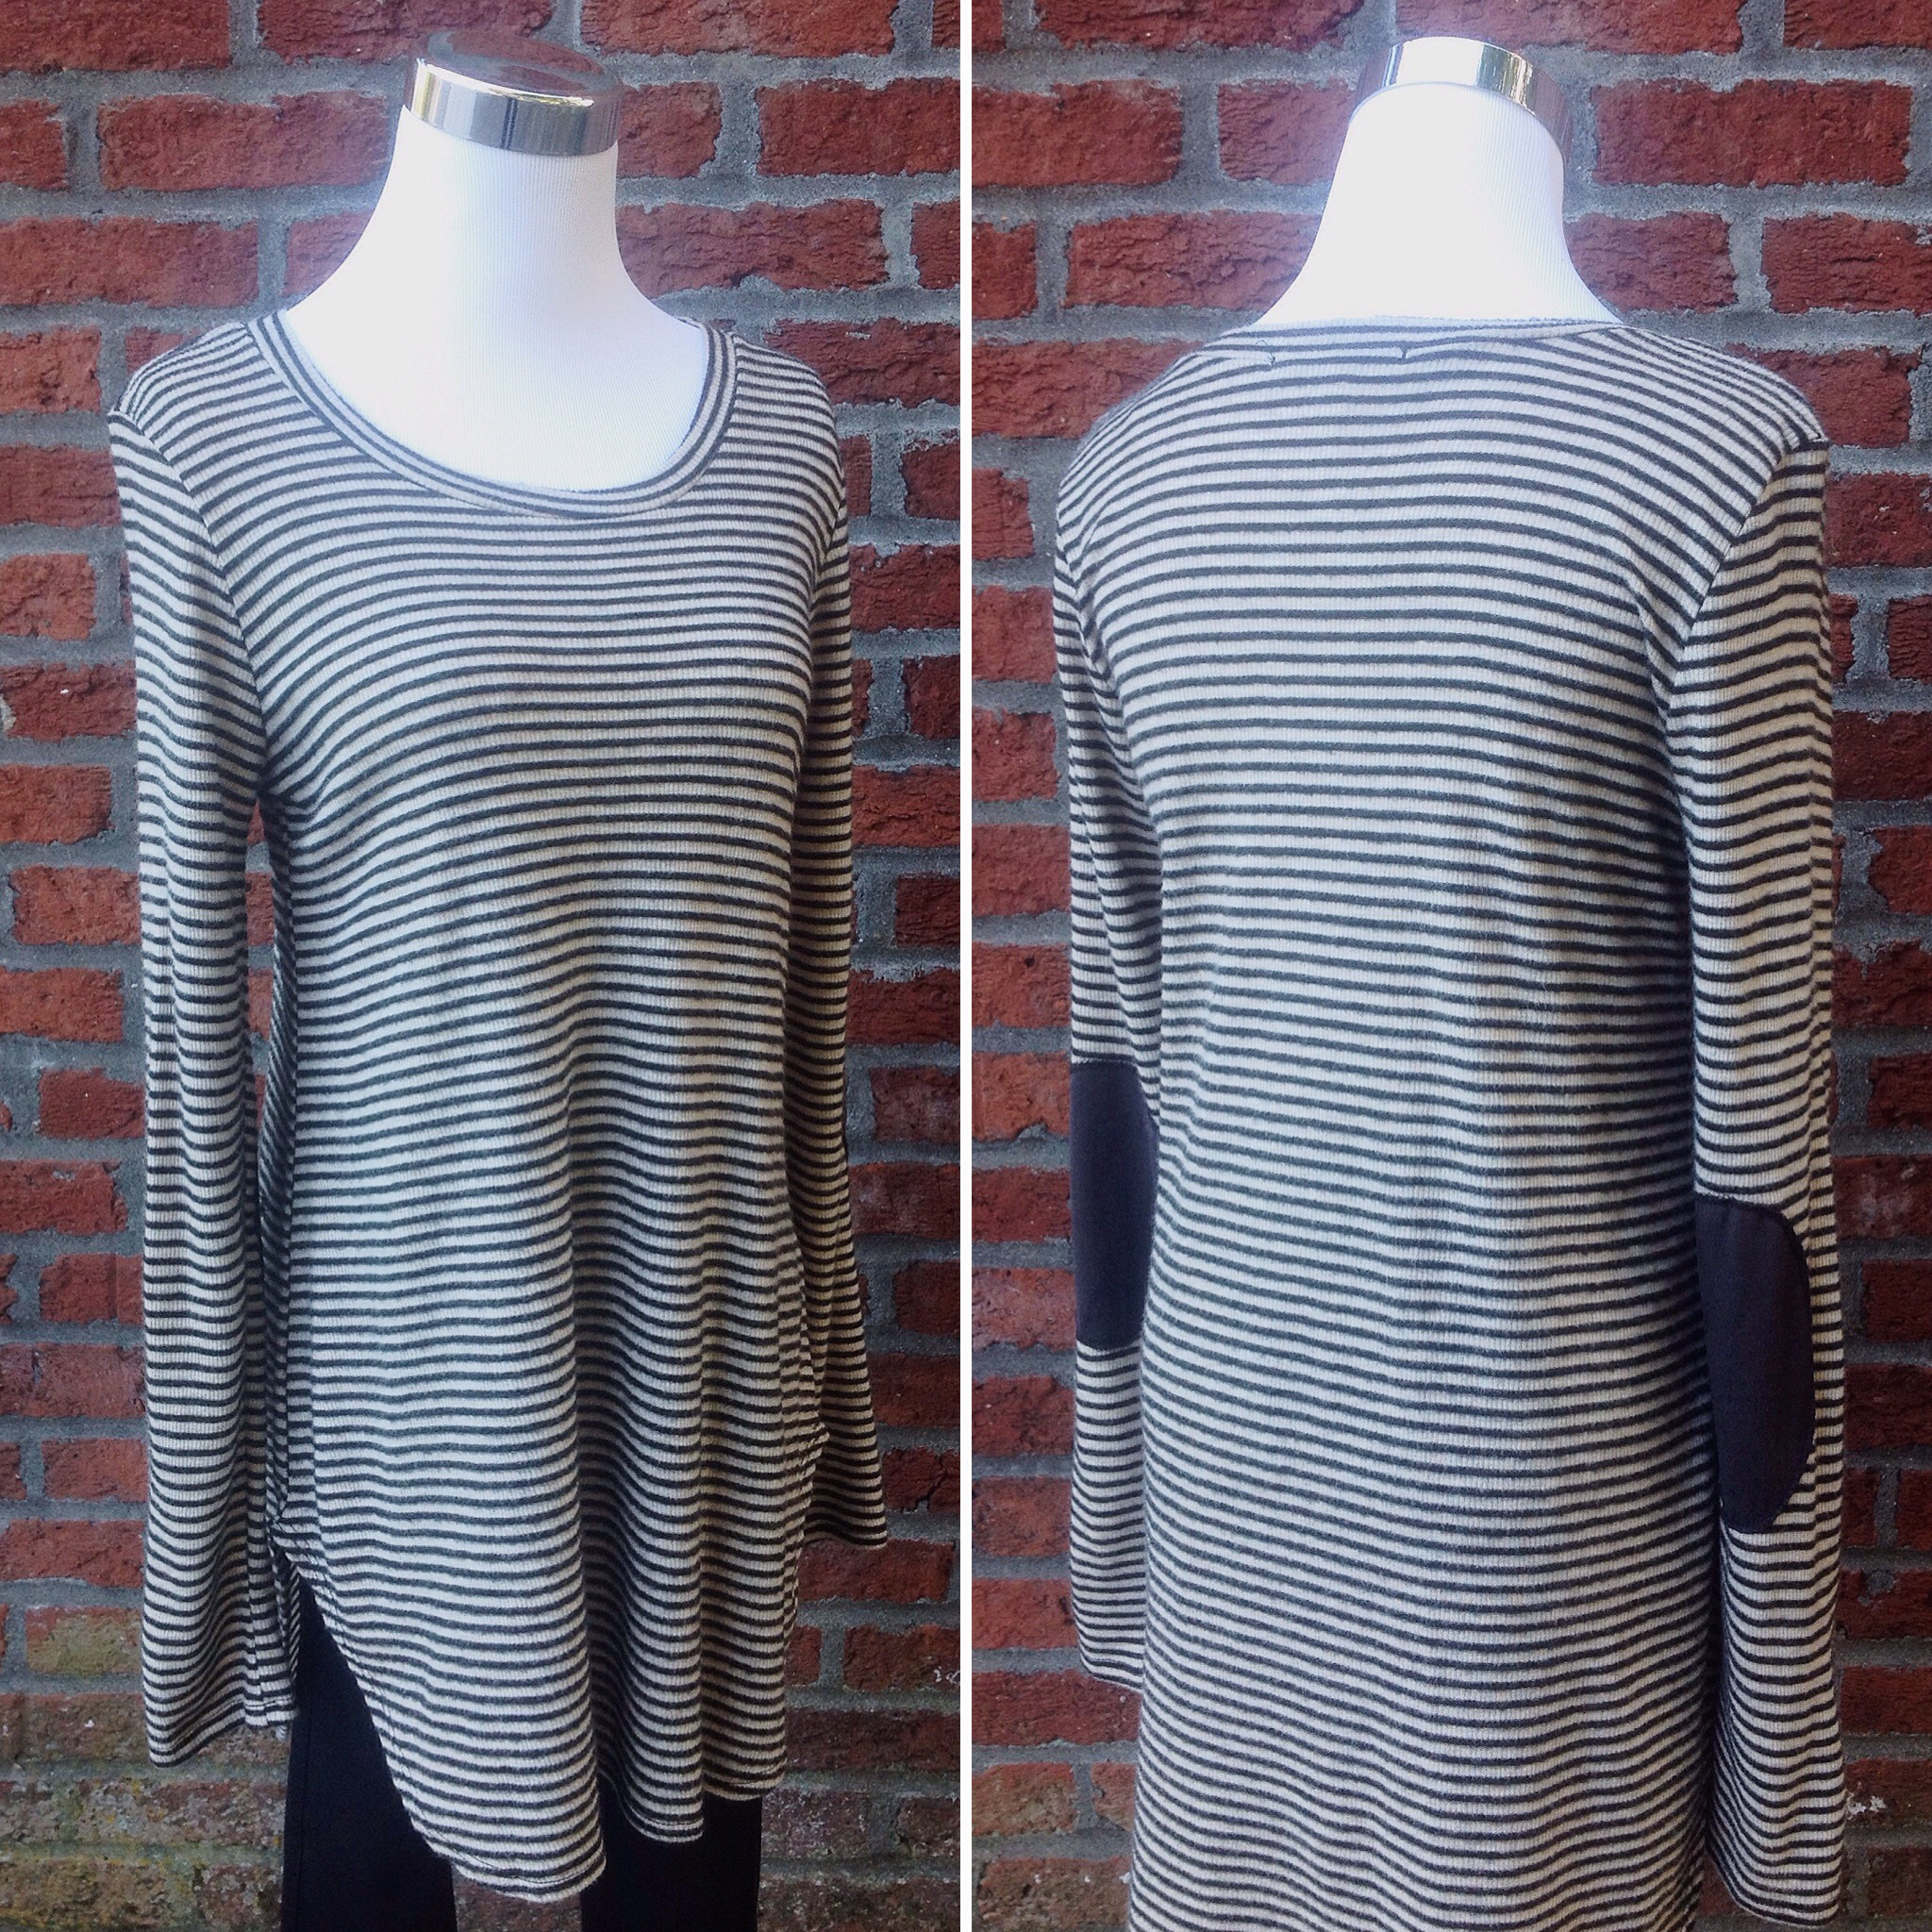 Brushed pinstripe top with elbow patches in taupe/black/charcoal, $34